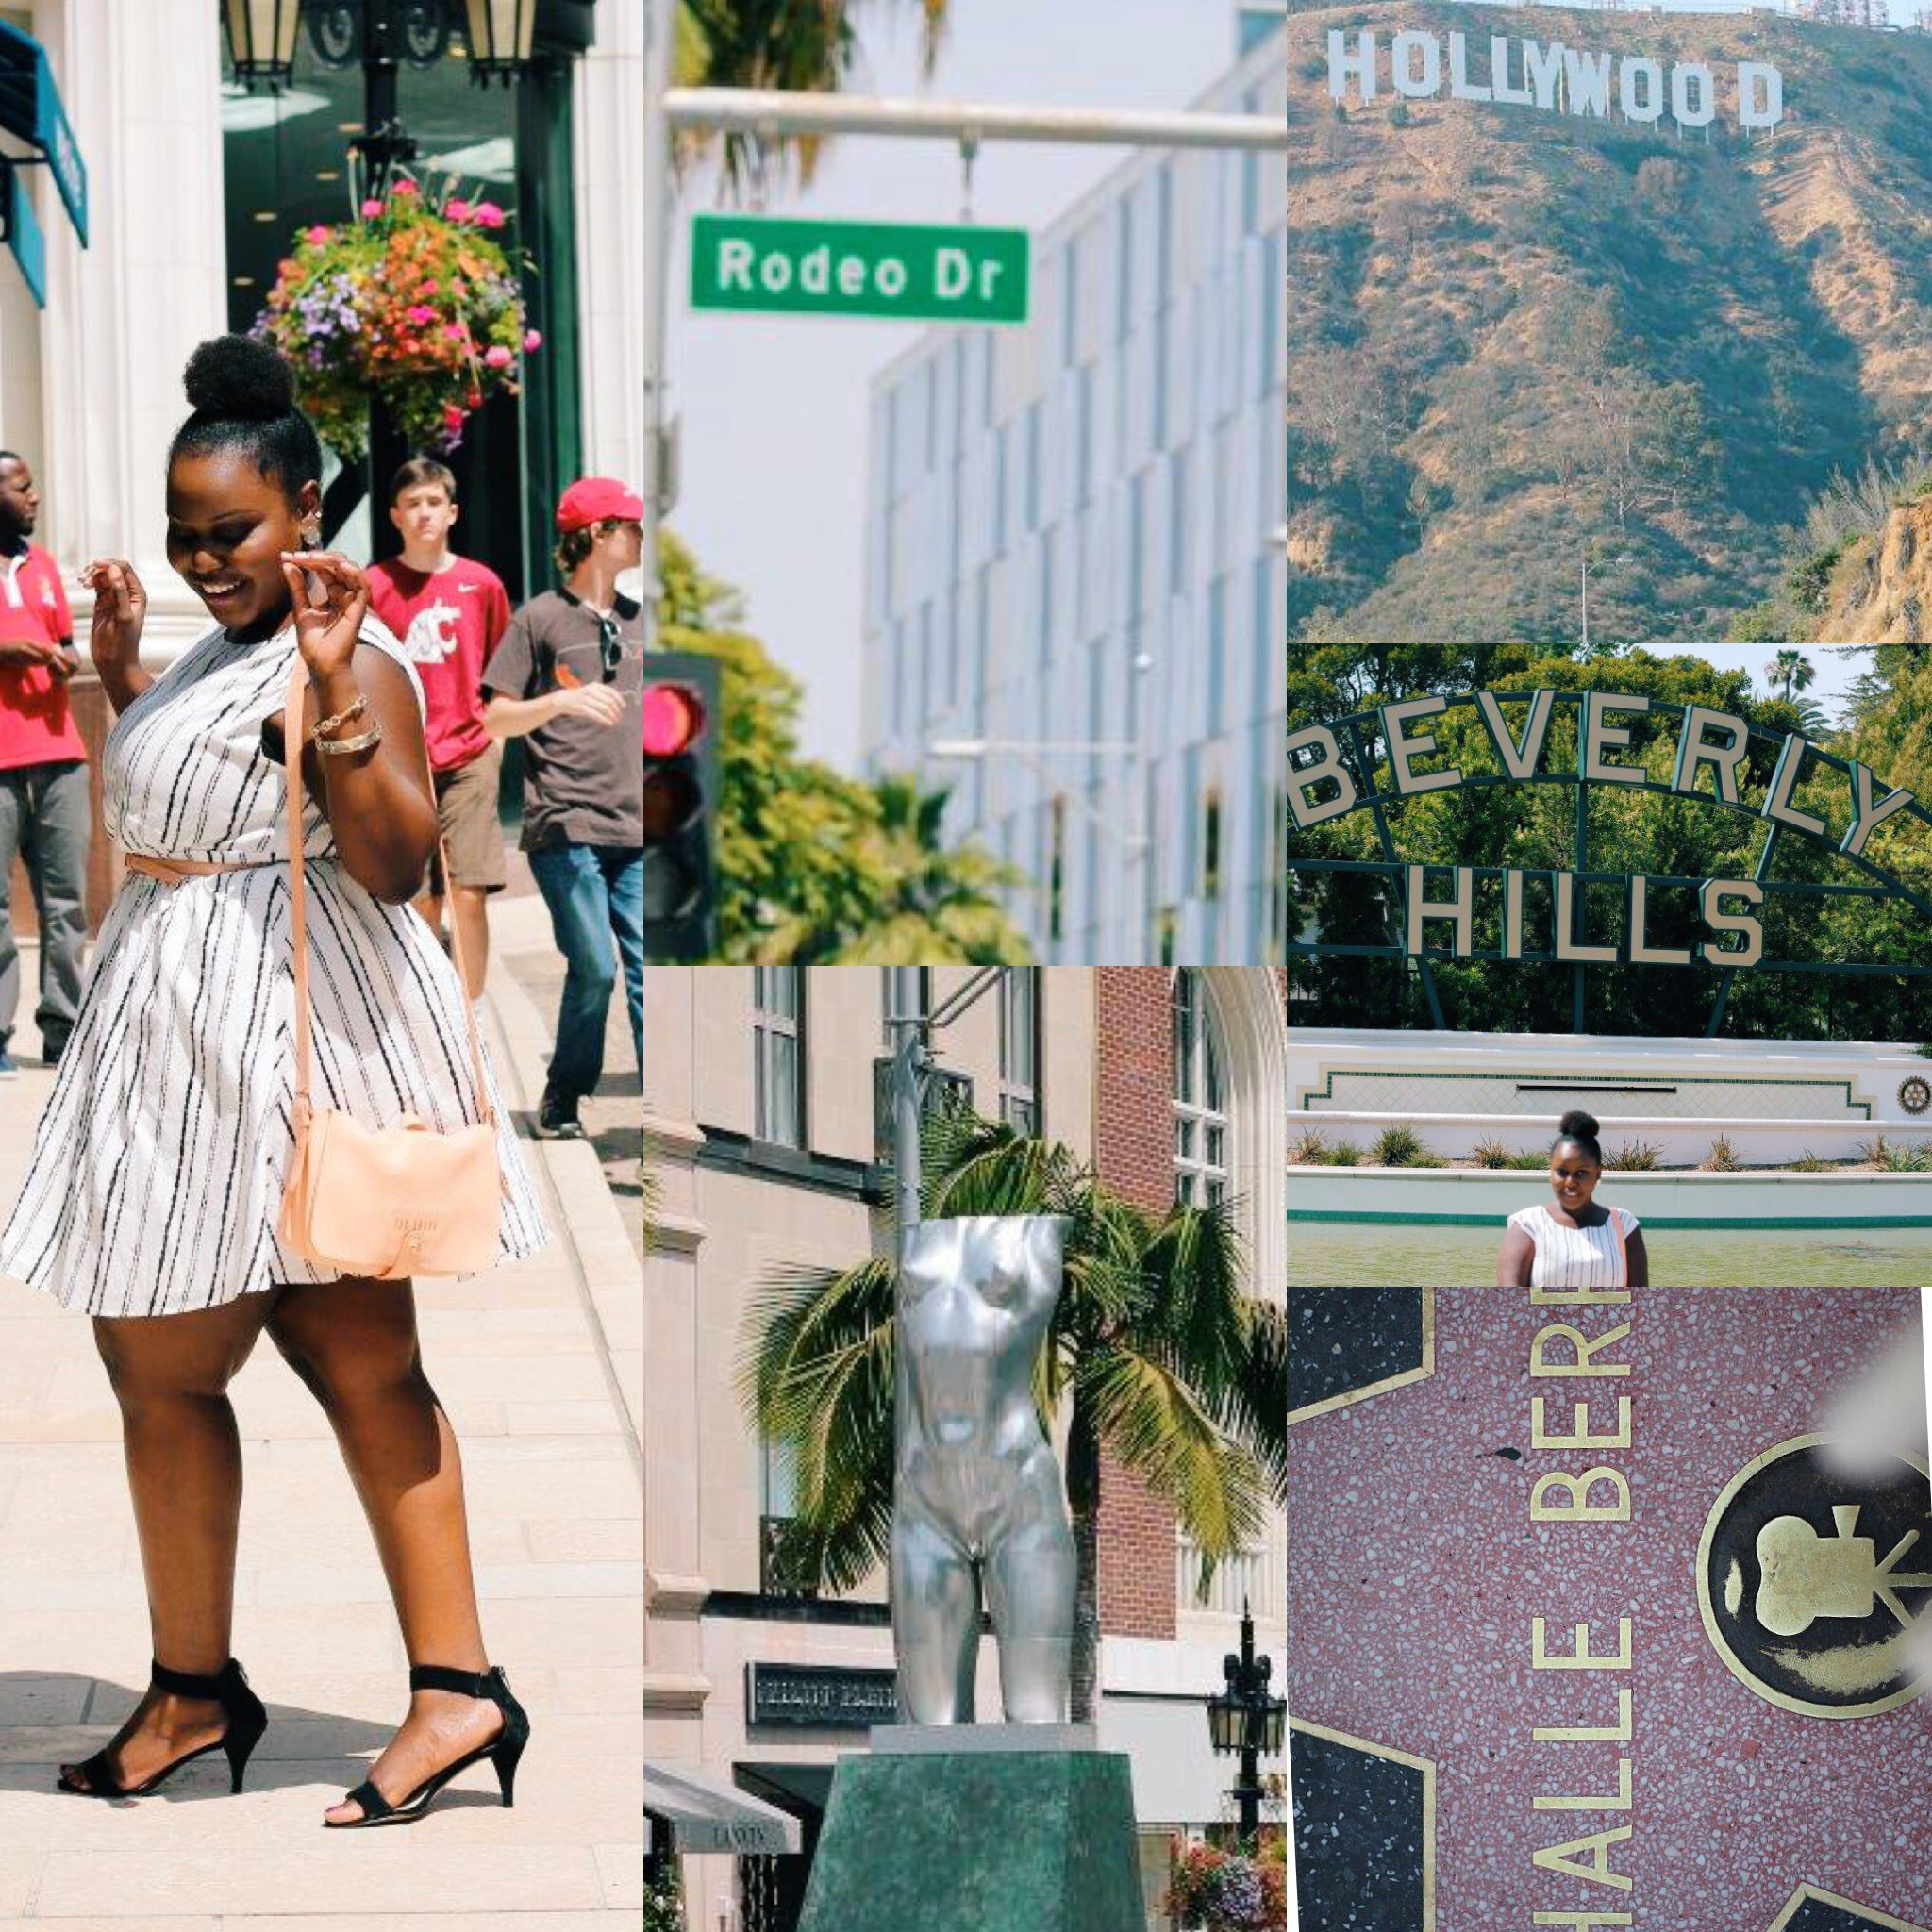 Los Angeles travel guide, what to do in los Angeles